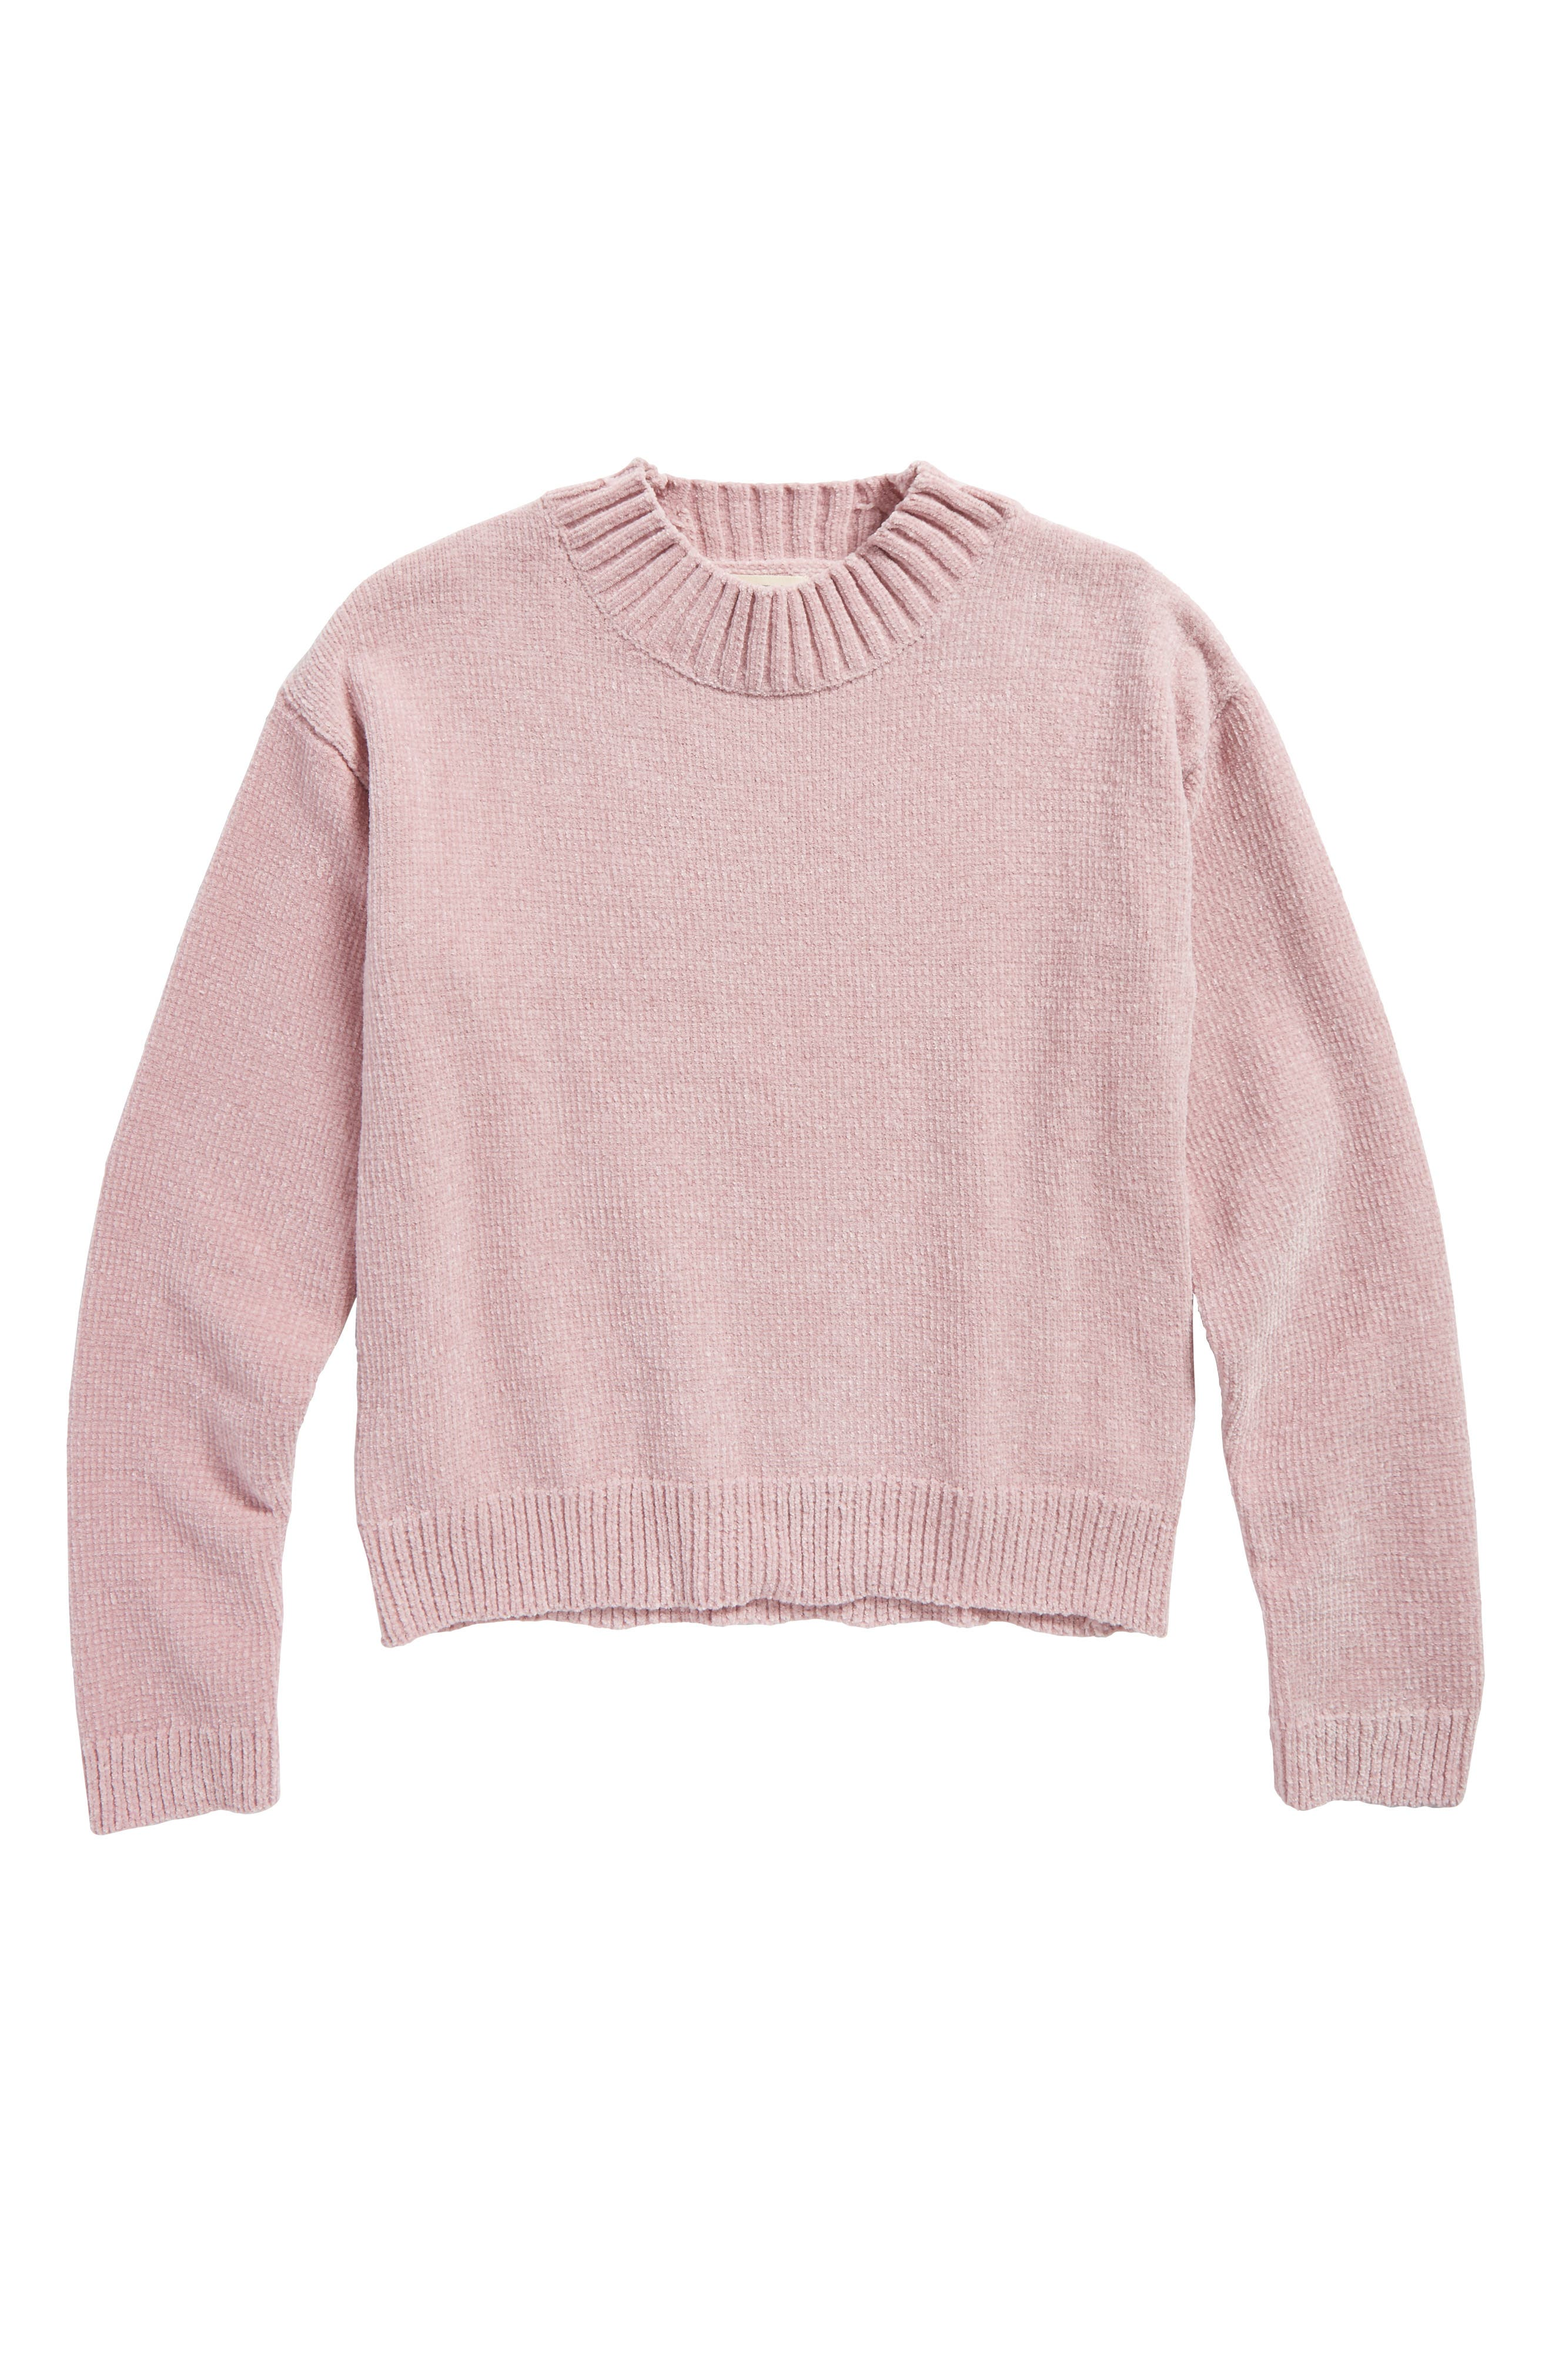 Chenille Mock Neck Sweater,                             Main thumbnail 1, color,                             Pink Zephyr